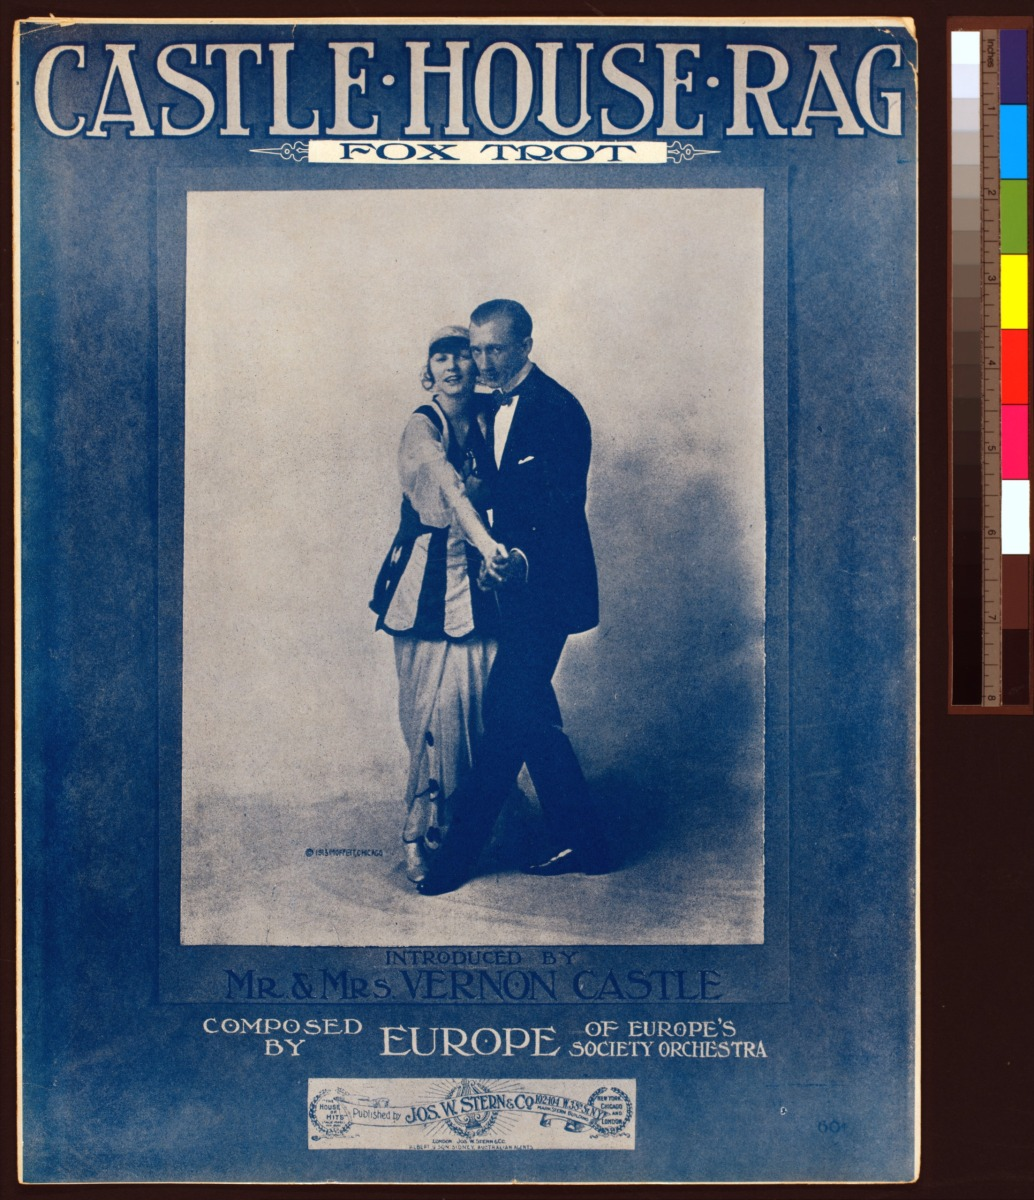 James Reese Europe's Castle House Rag